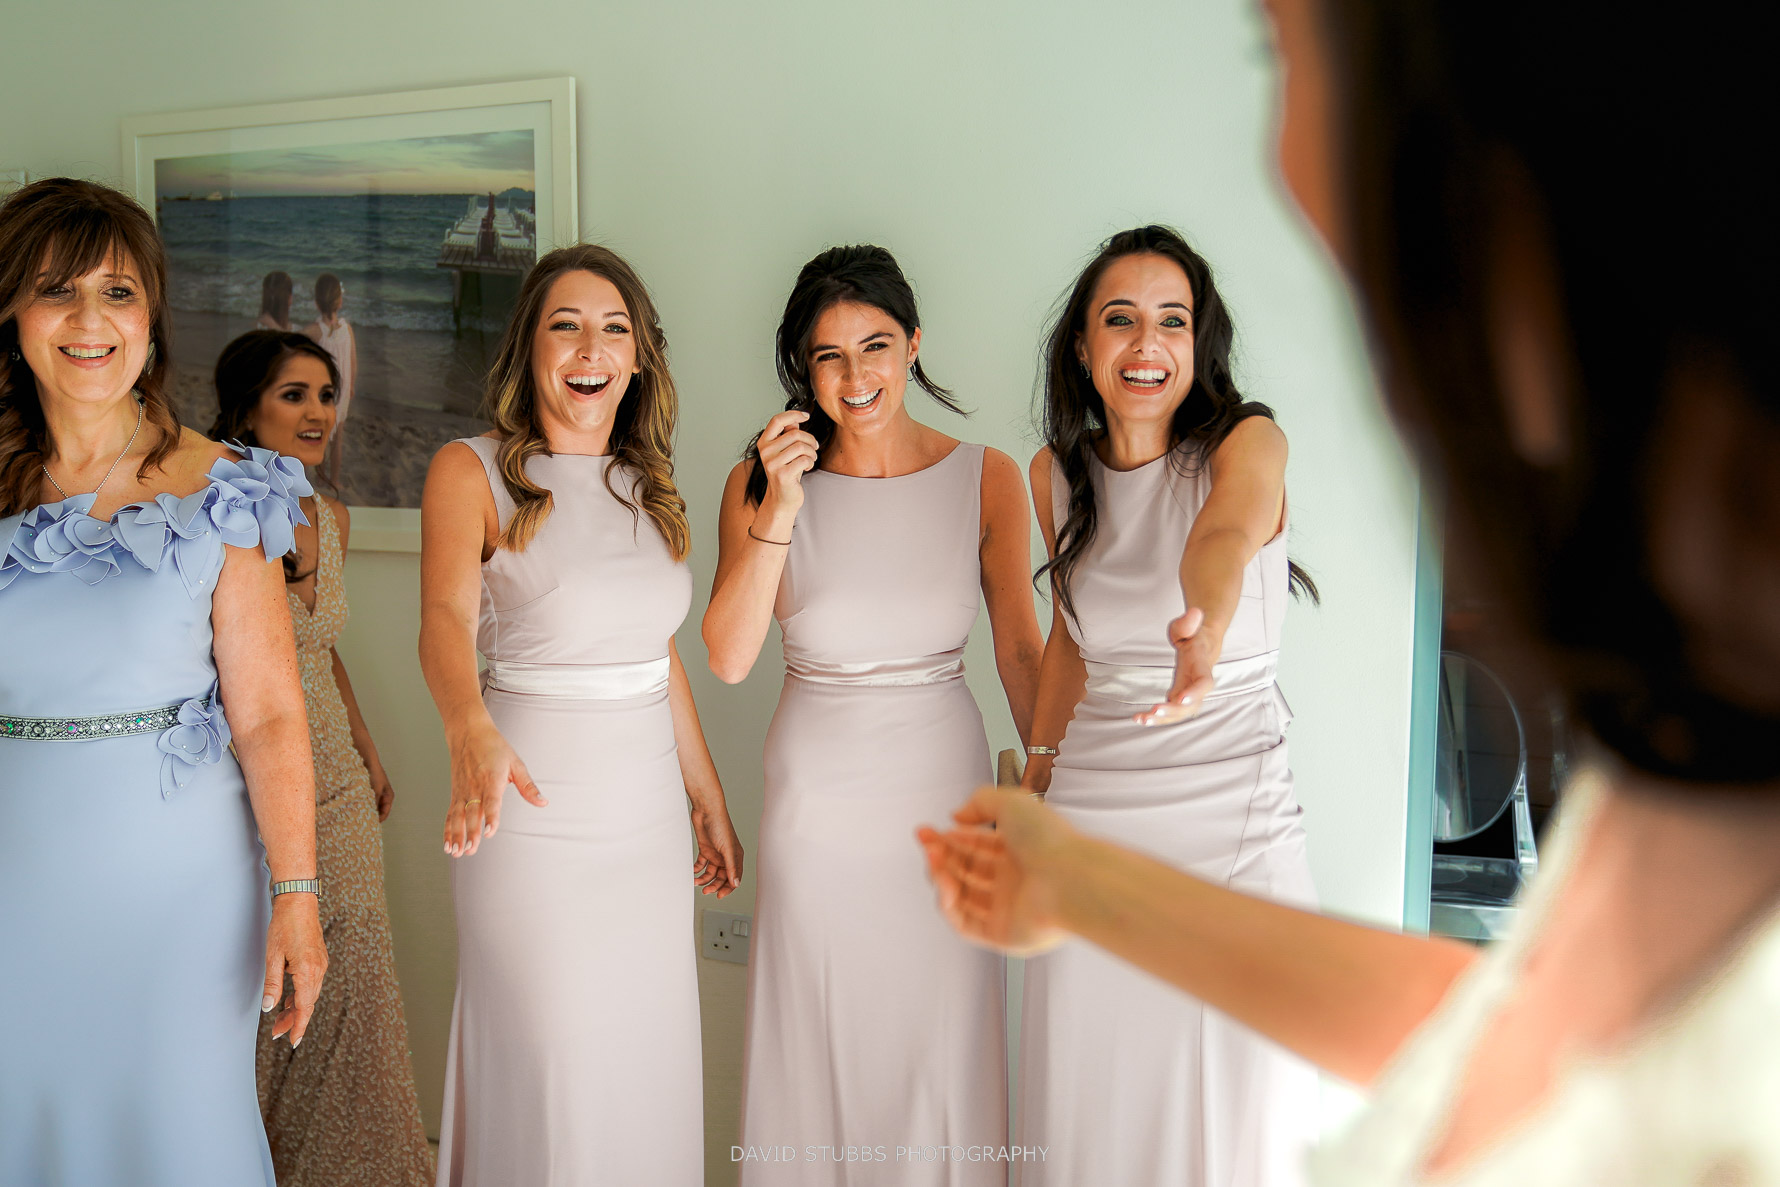 bridesmaids seeing the bride fo the first time in her wedding dress